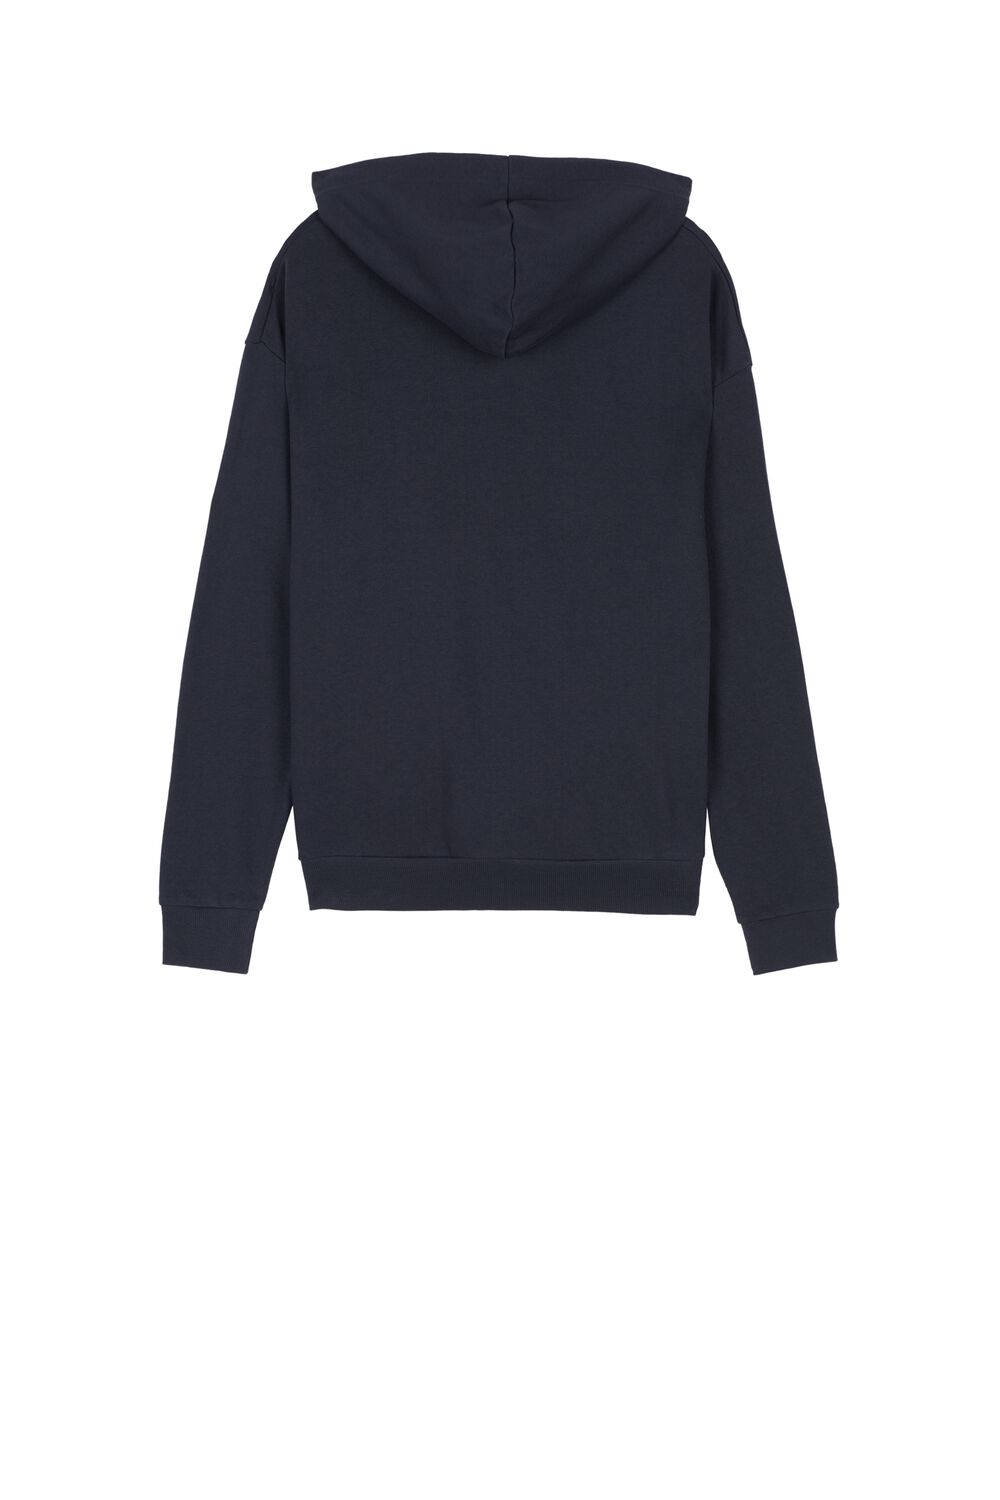 Sweatshirt with Hood and Zipper with Inserts